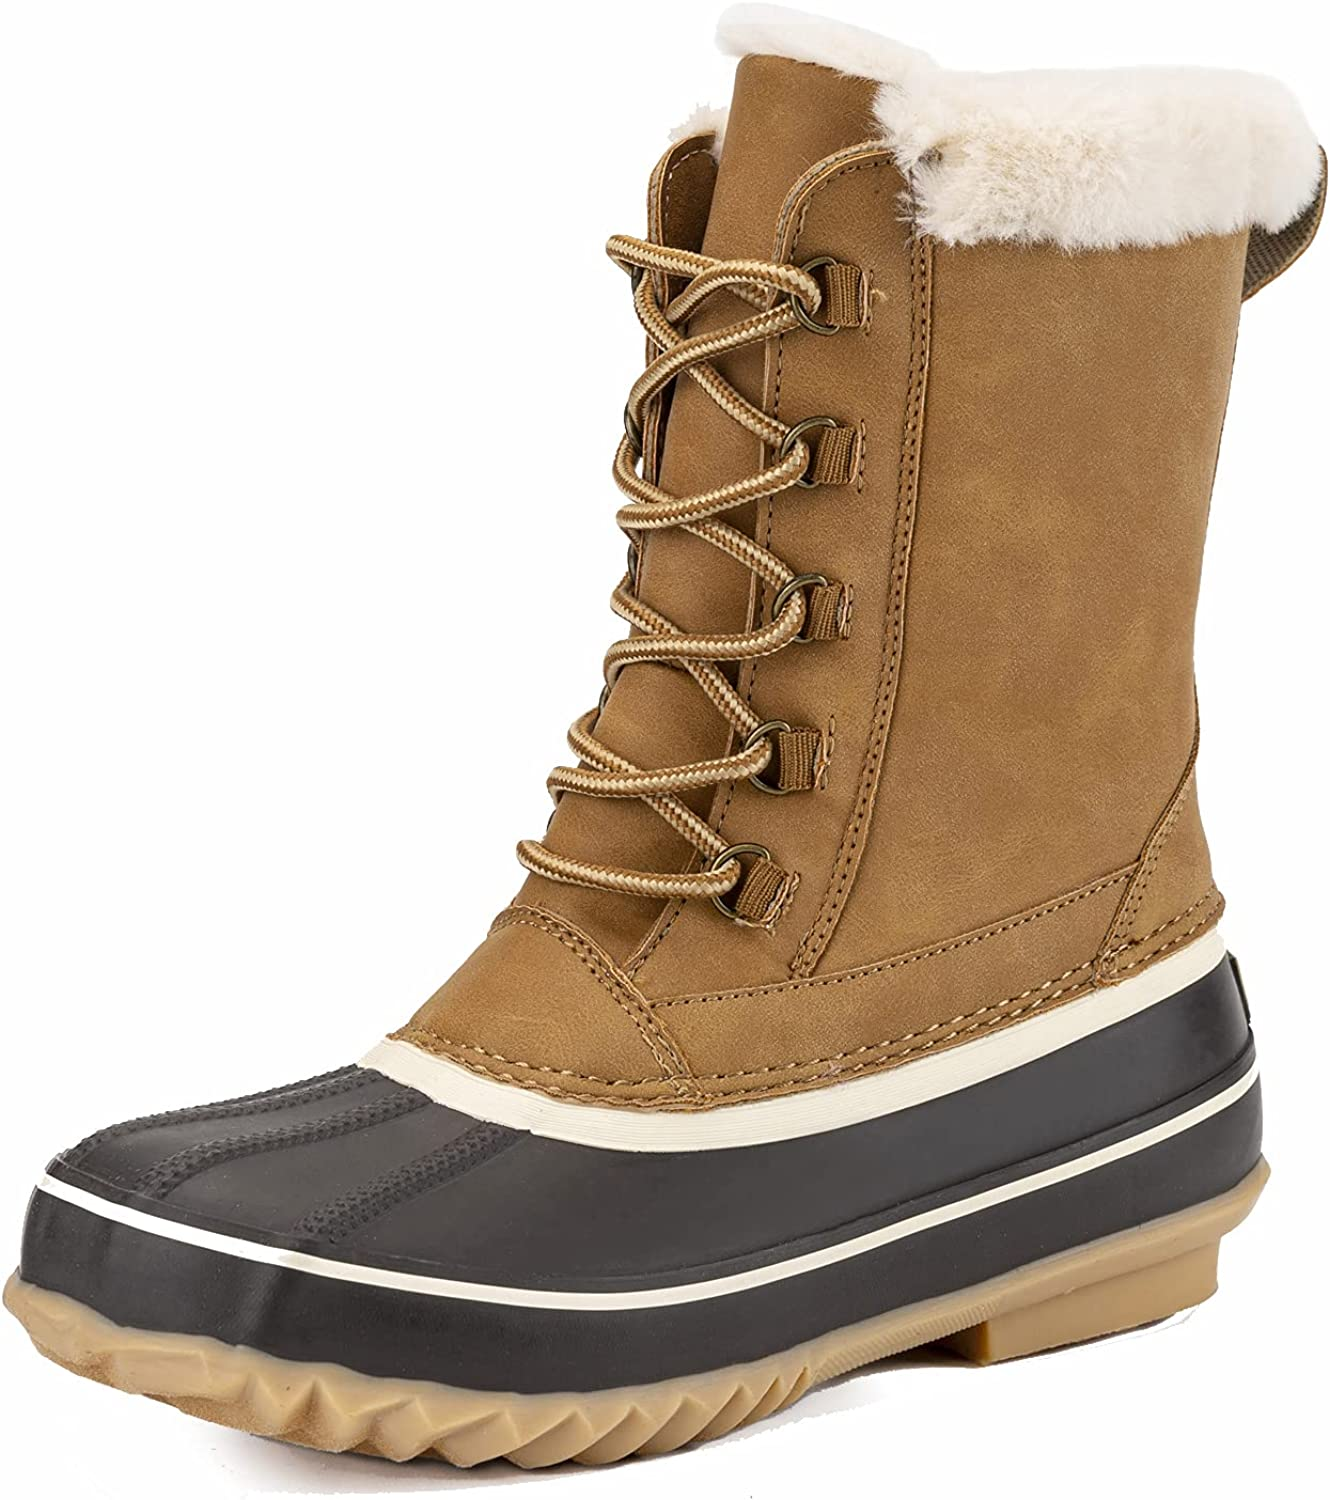 Mid-Calf Snow Boots, GAWBAW Women Waterproof Lace Up Snow Rain Boots Warm Faux Fur Lined Winter Snow Boots